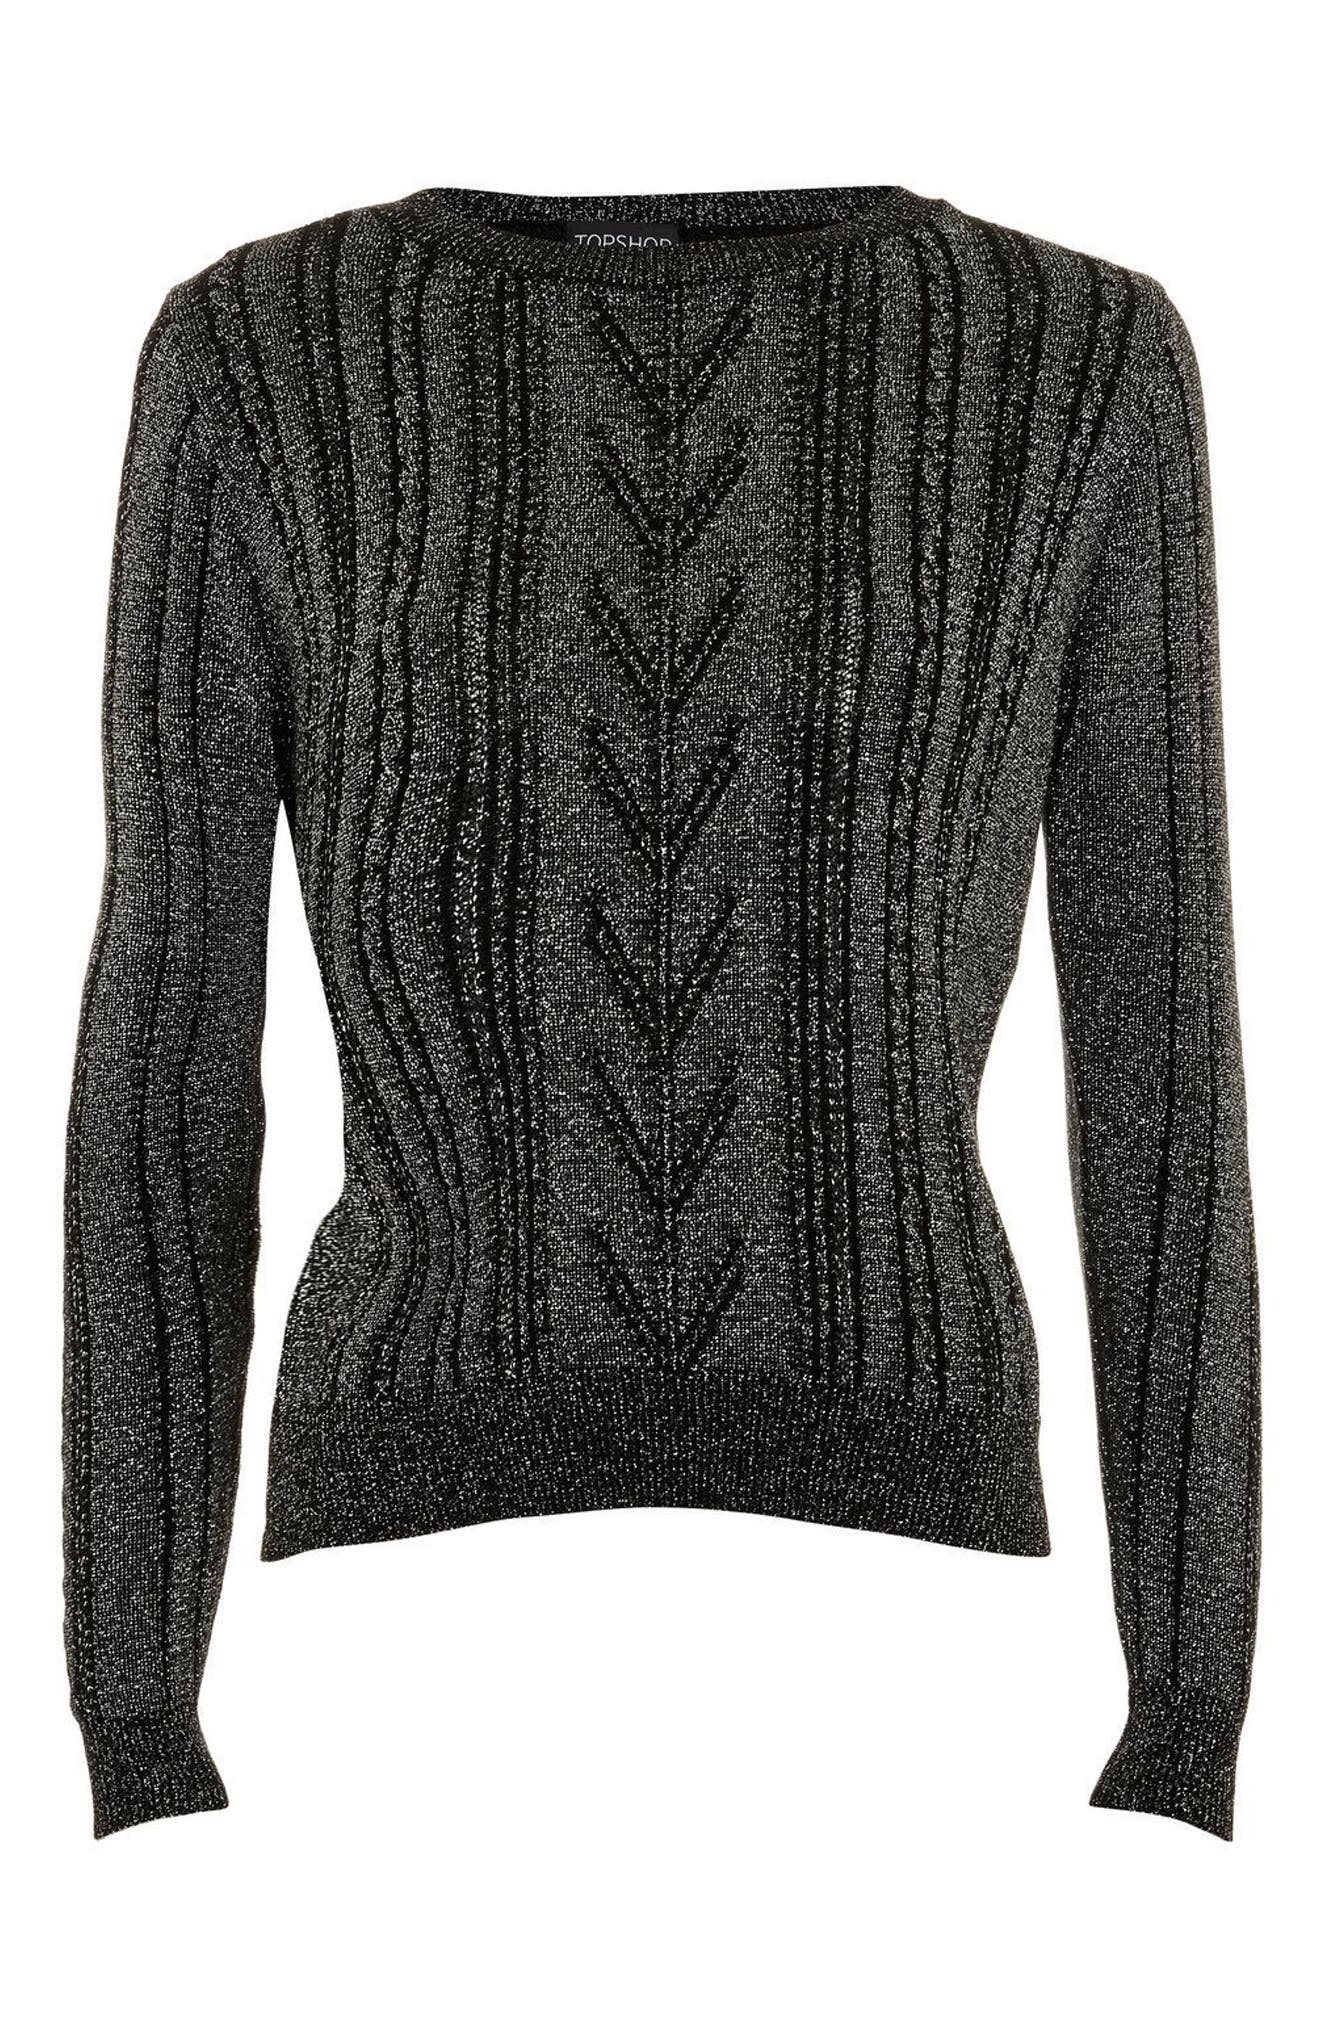 Alternate Image 3  - Topshop Metallic Cable Knit Sweater